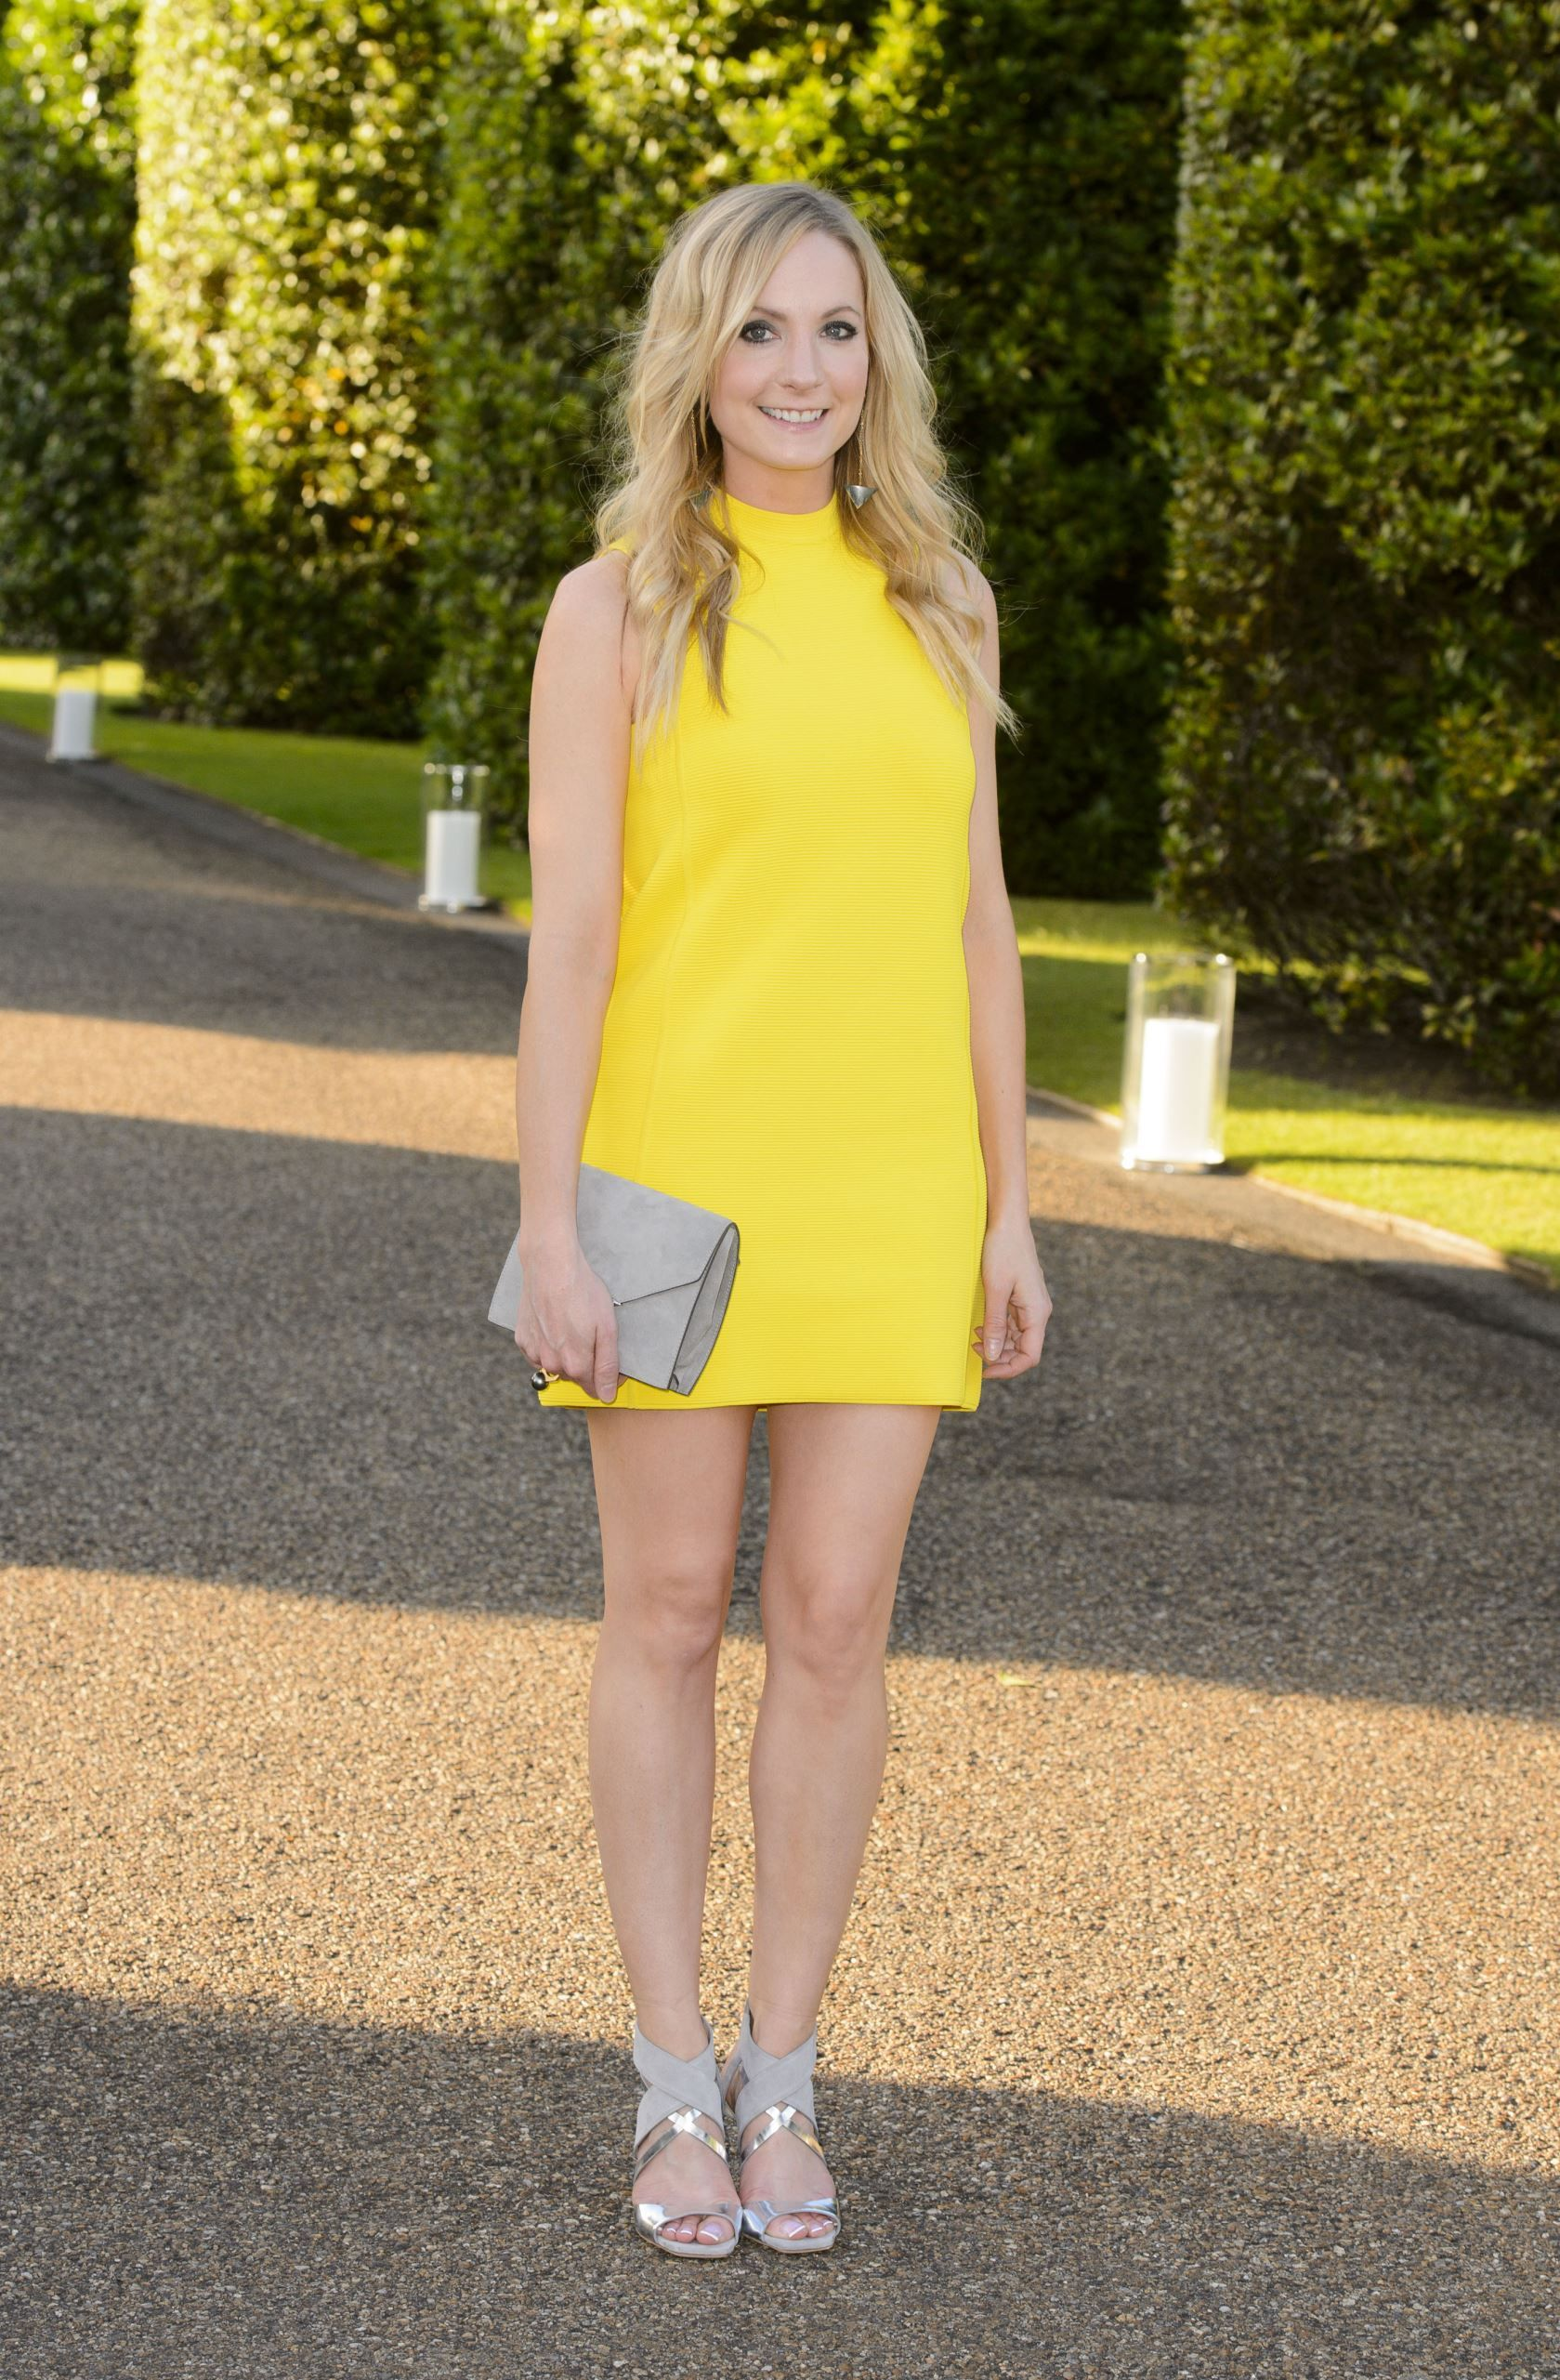 Do silver shoes go with a yellow dress?